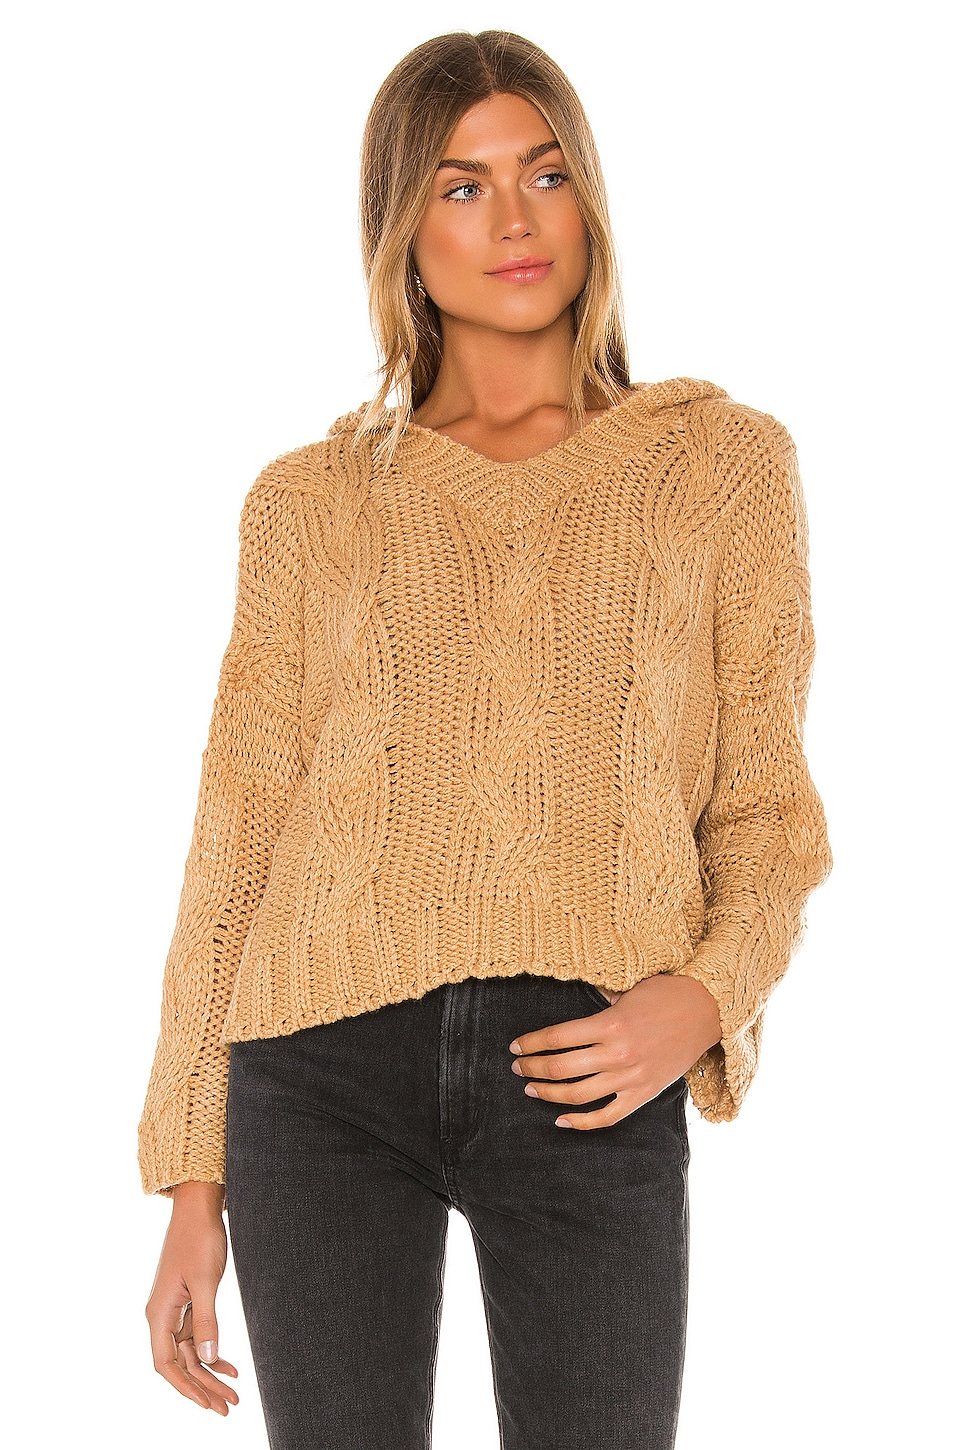 Tularosa Apryl Pullover Sweater in Taupe